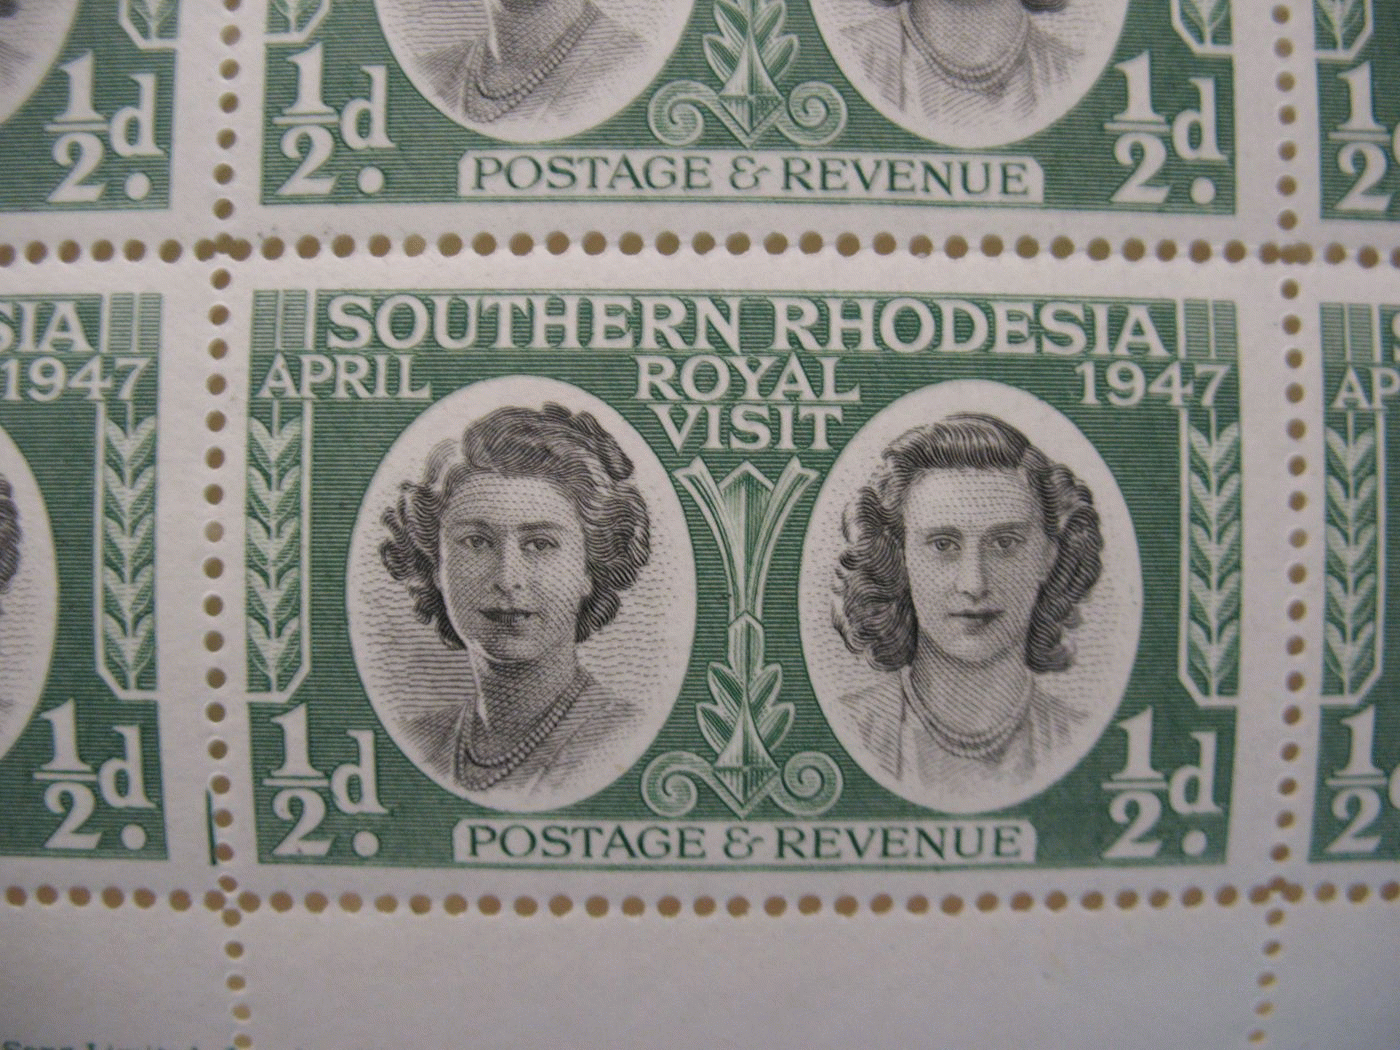 Stamps - Royal visit, 1947